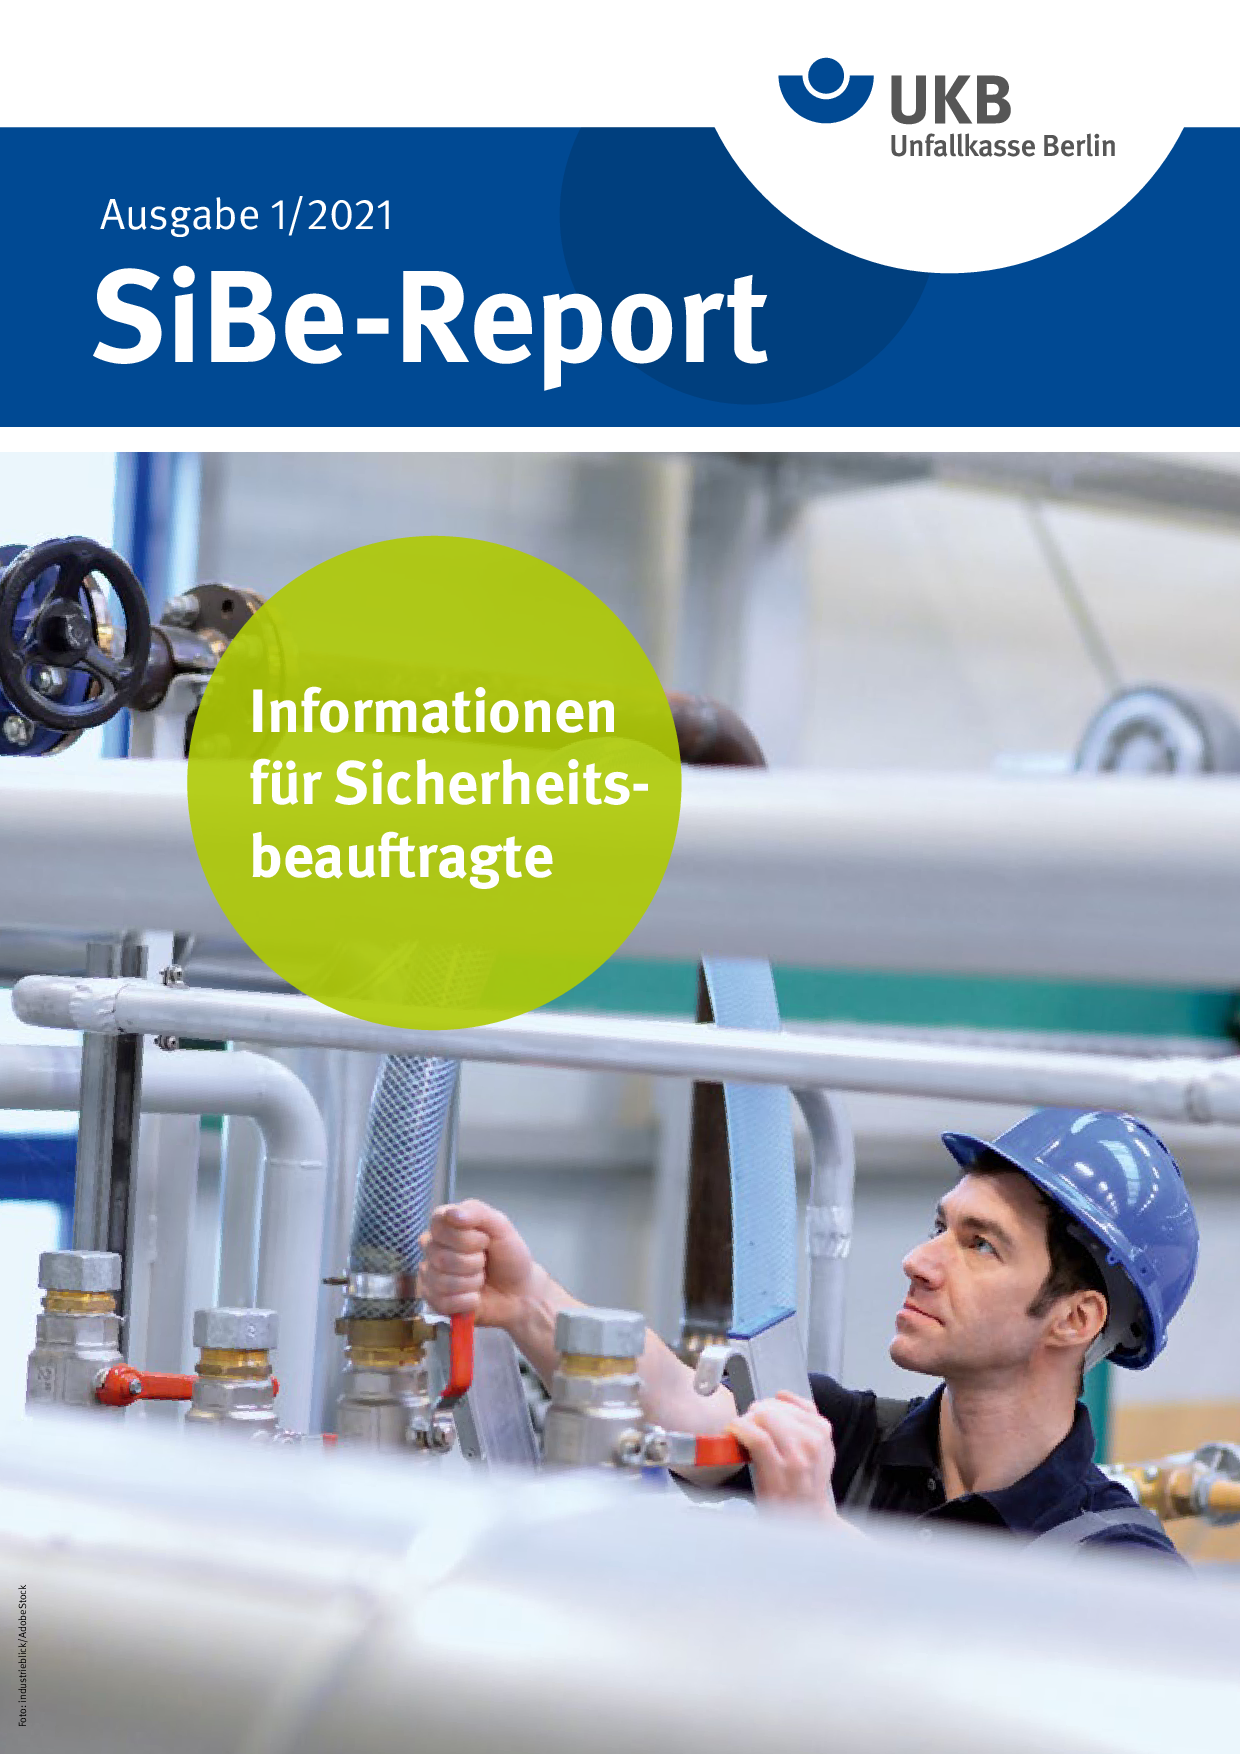 SiBe-Report 1/2021